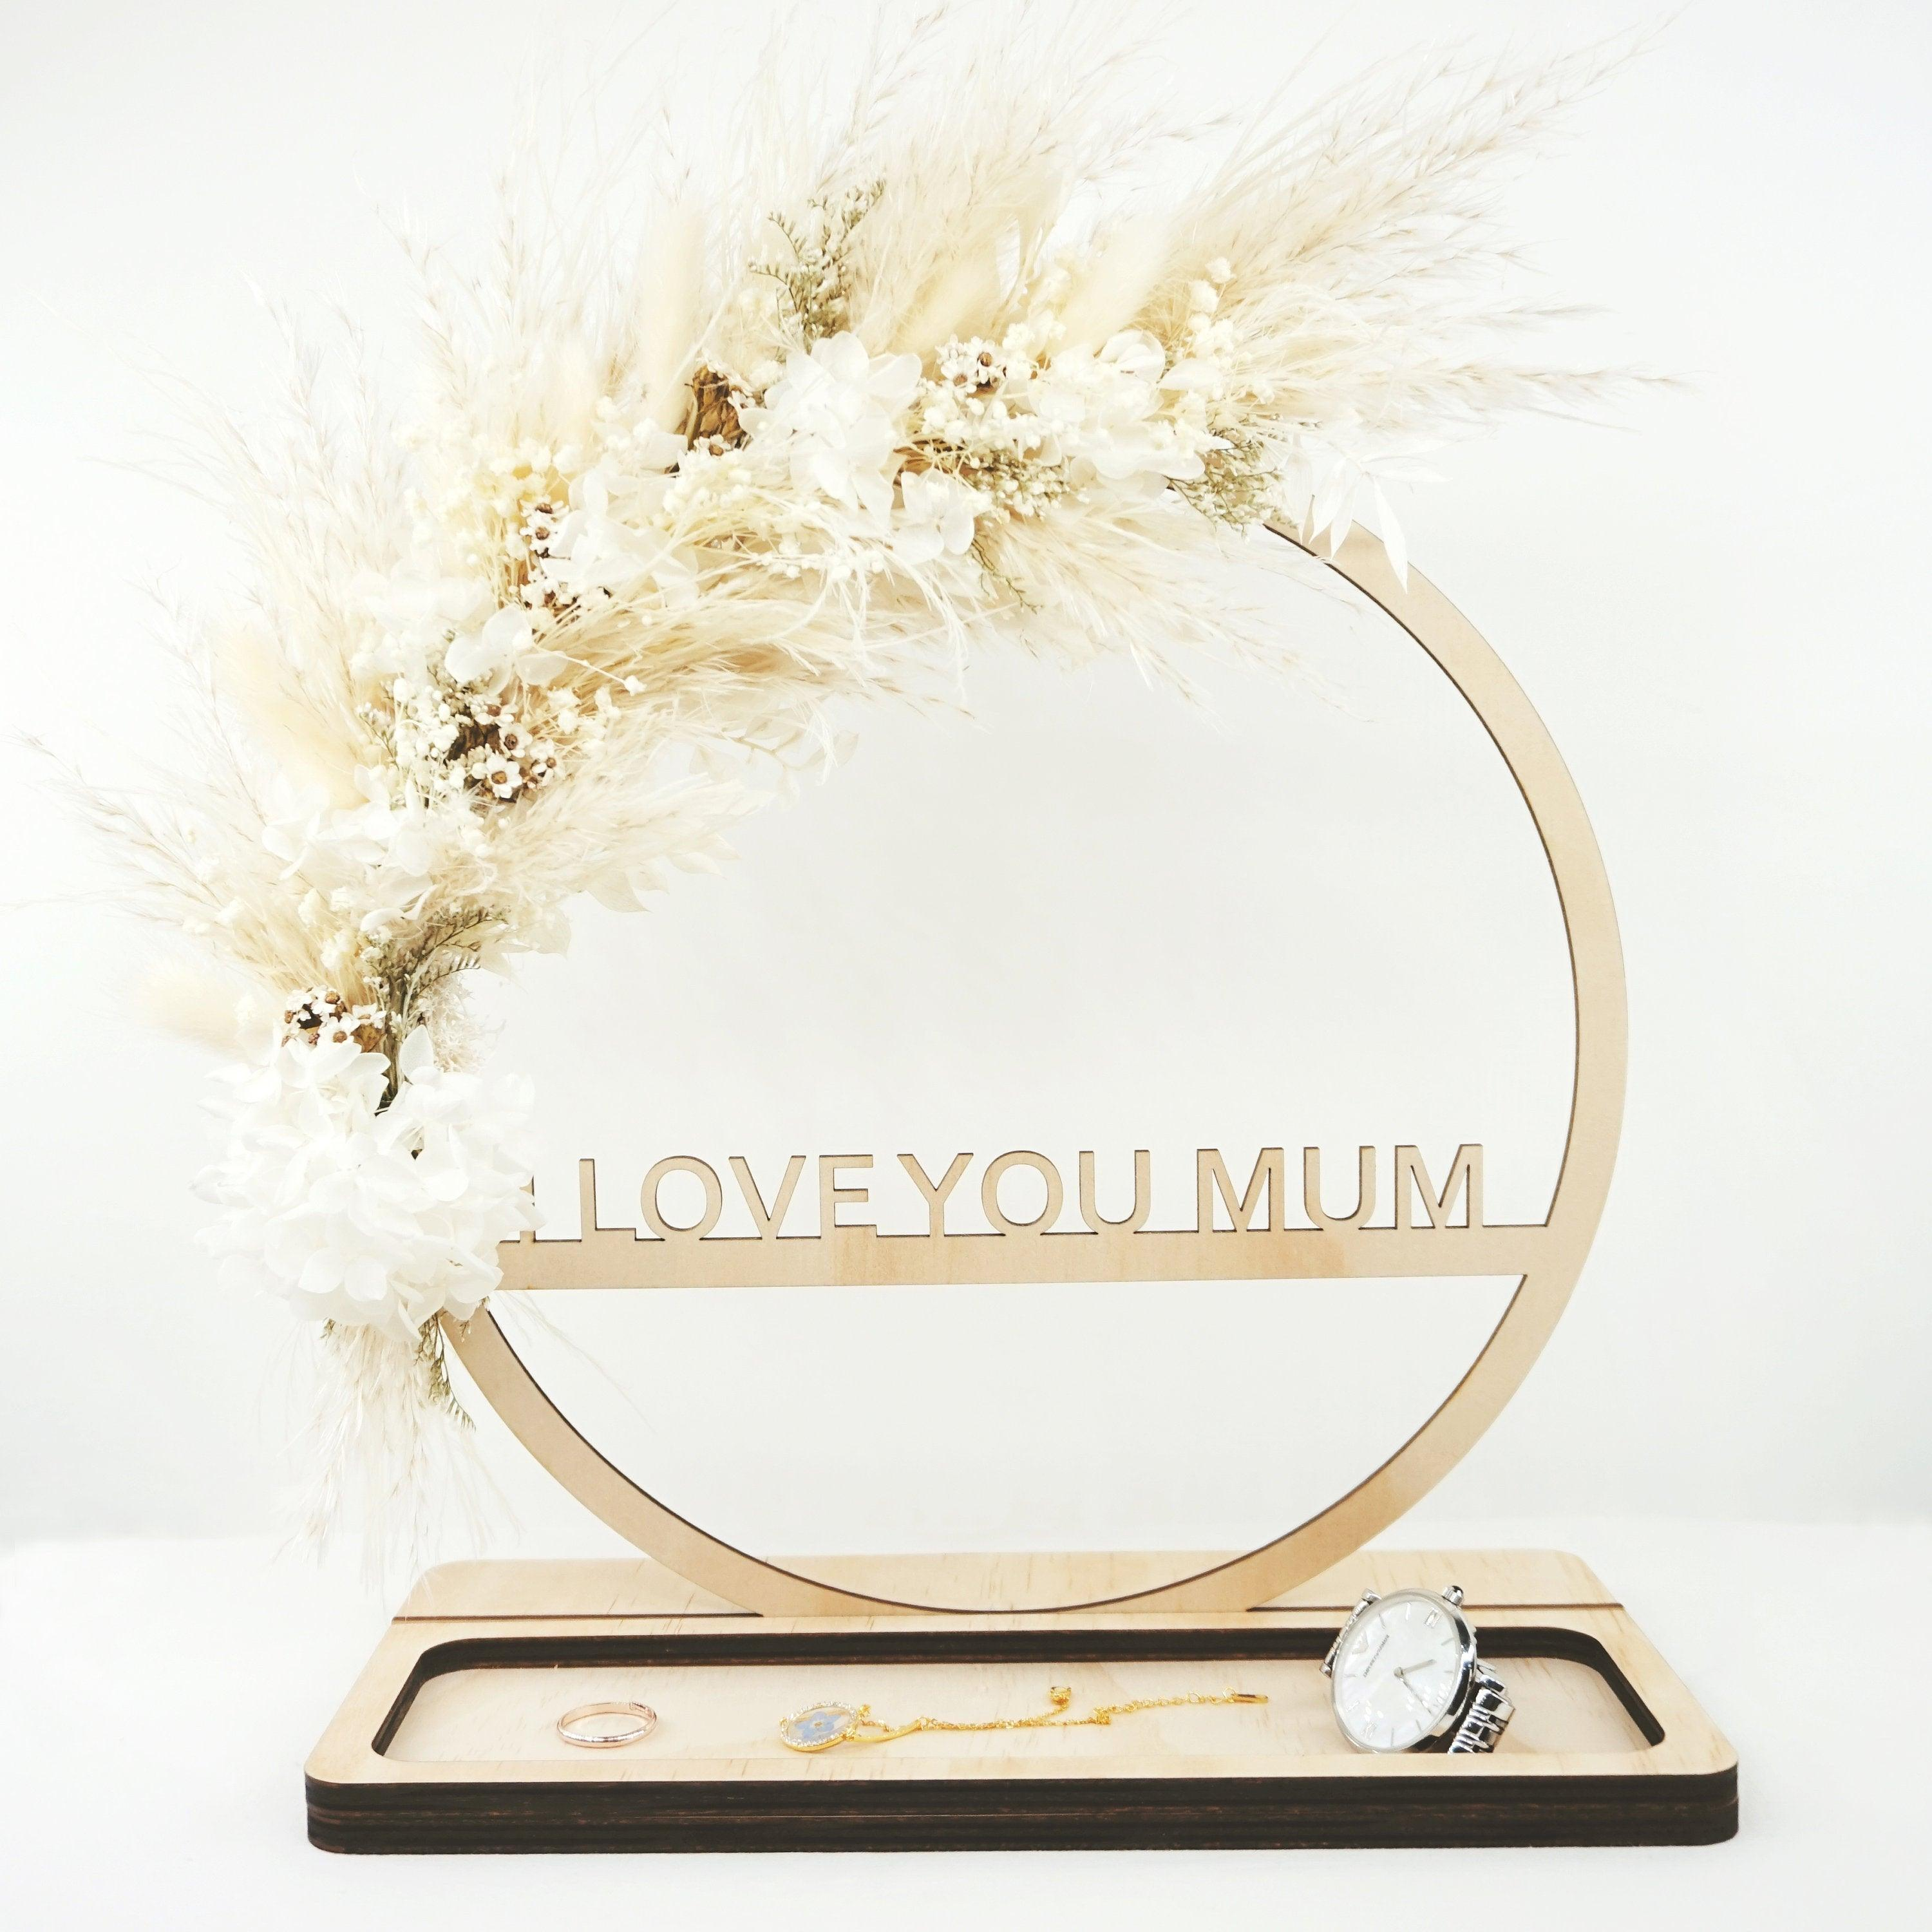 Dried Flower Wreath Entryway Organiser - Mother's Day Gift, I Love You Mum, Wooden Valet tray, Dish Tray, Desk Organiser